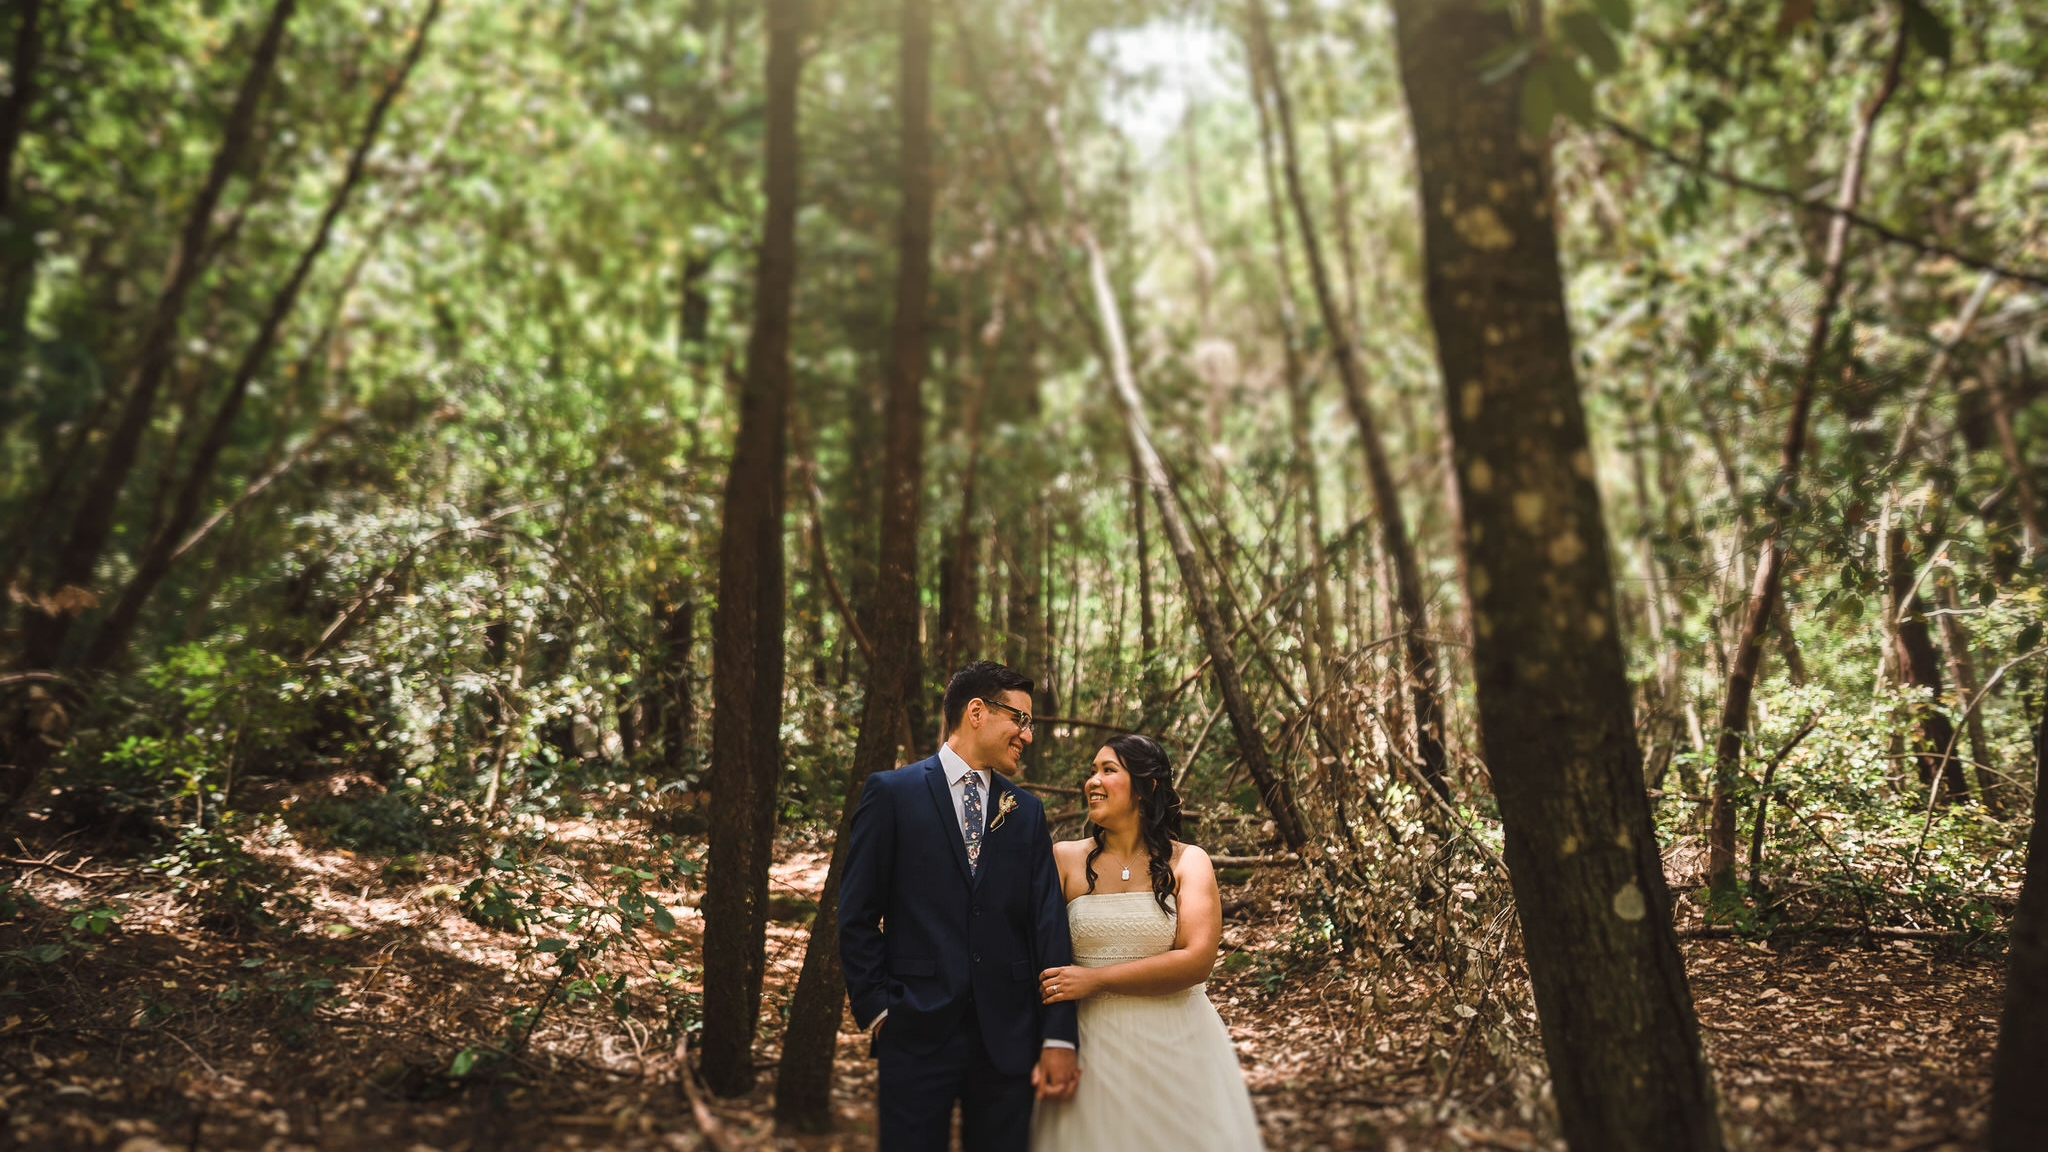 Sanborn County Park Wedding // Photo by Trung Hoang (www.trunghoangphotography.com)